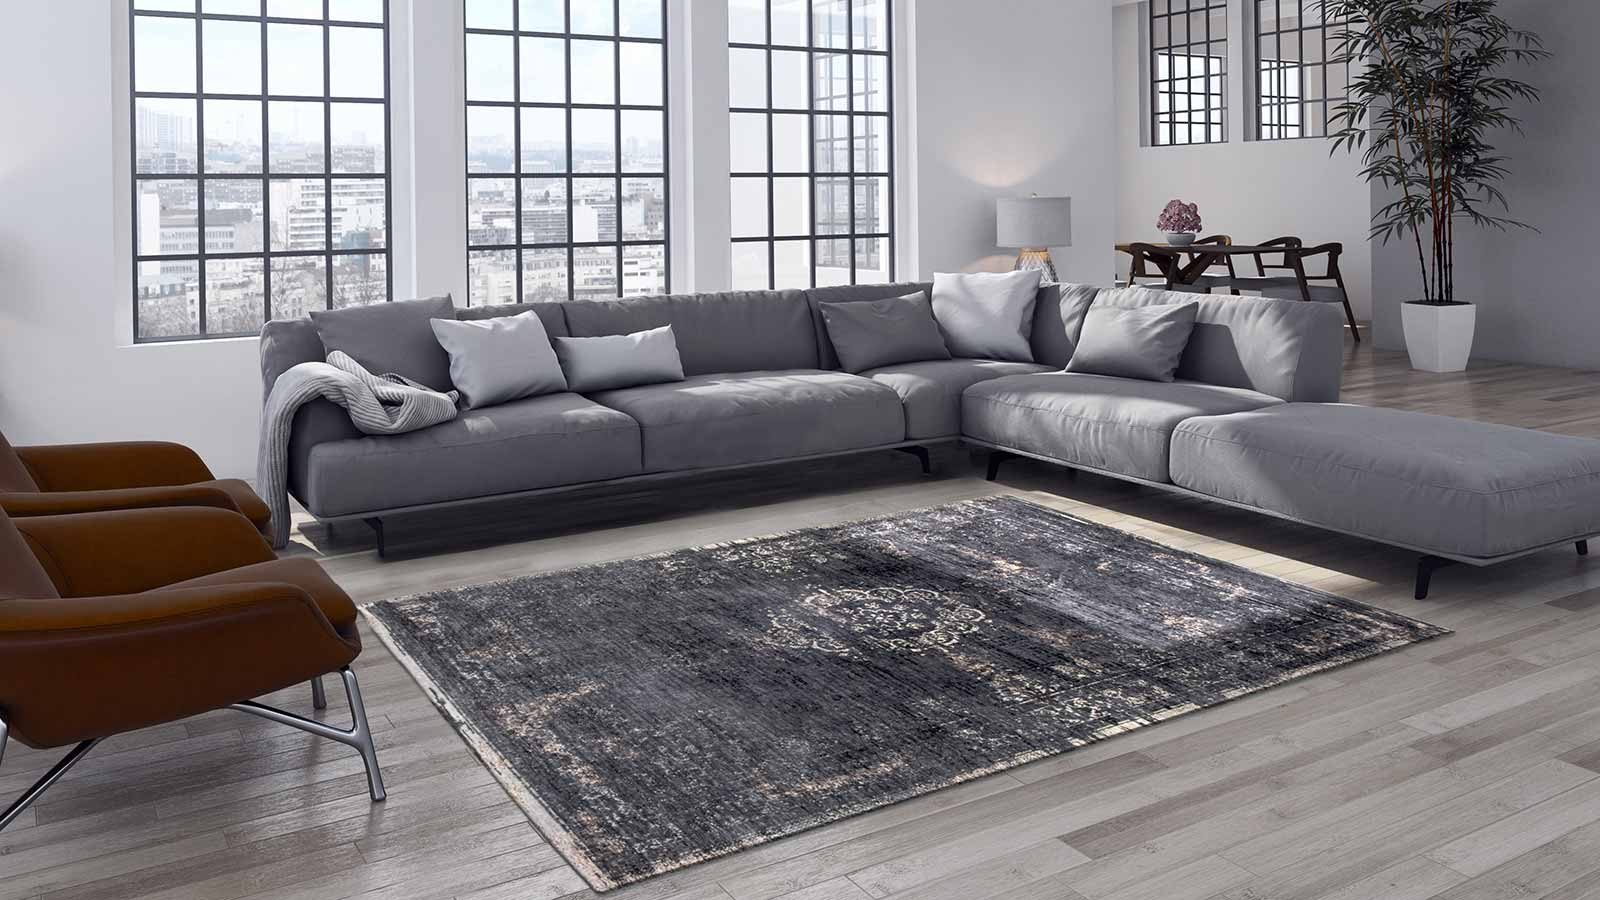 tapis Louis De Poortere LX8263 Fading World Medaillon Mineral Black interior 2